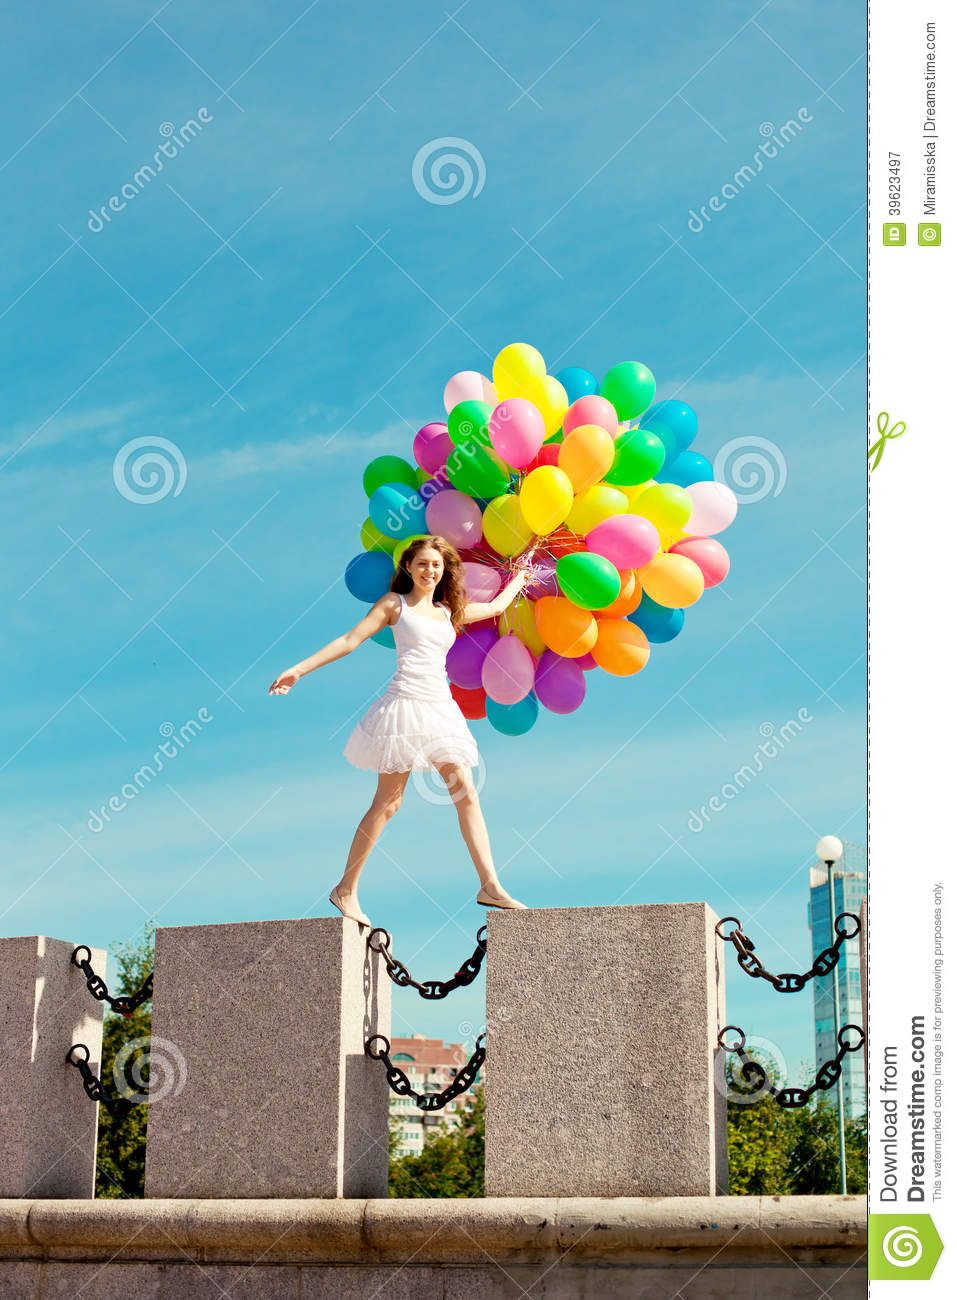 Happy Birthday Woman Against The Sky With Rainbow Colored Air Balloons In Her Hands Sunny And Positive Energy Of Urban Street Young Beautiful Girl On